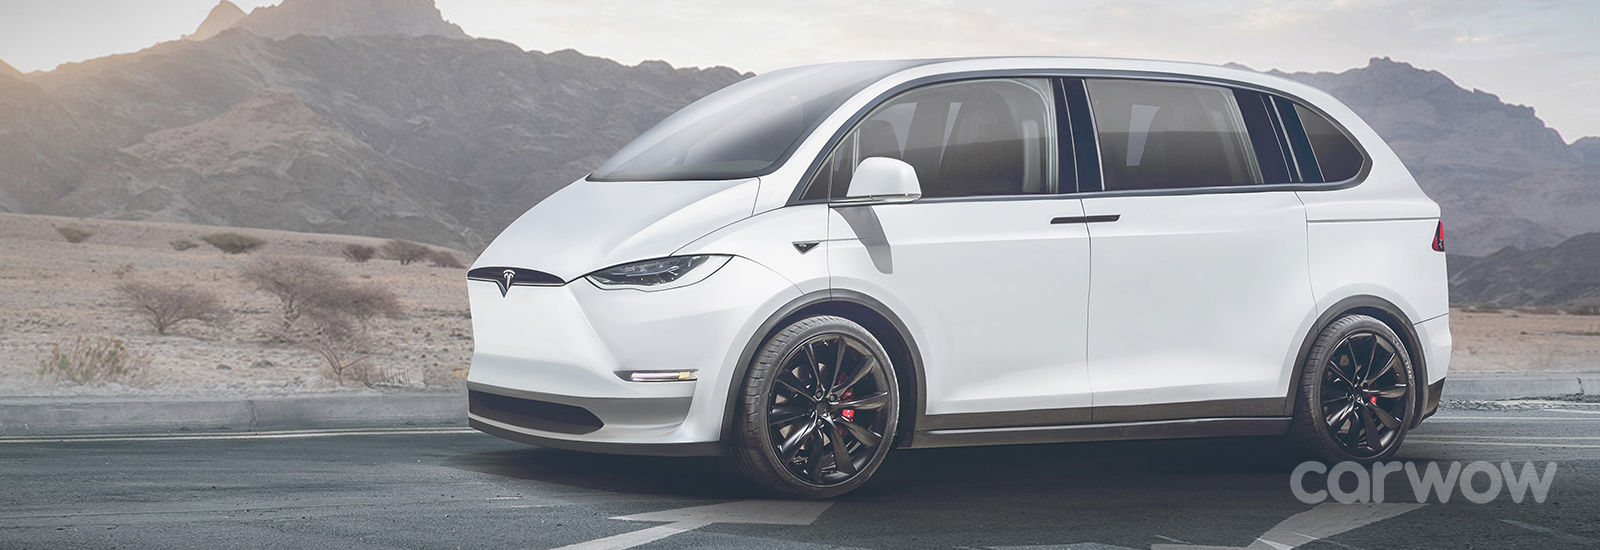 New Tesla Minivan Price Specs And Release Date Carwow